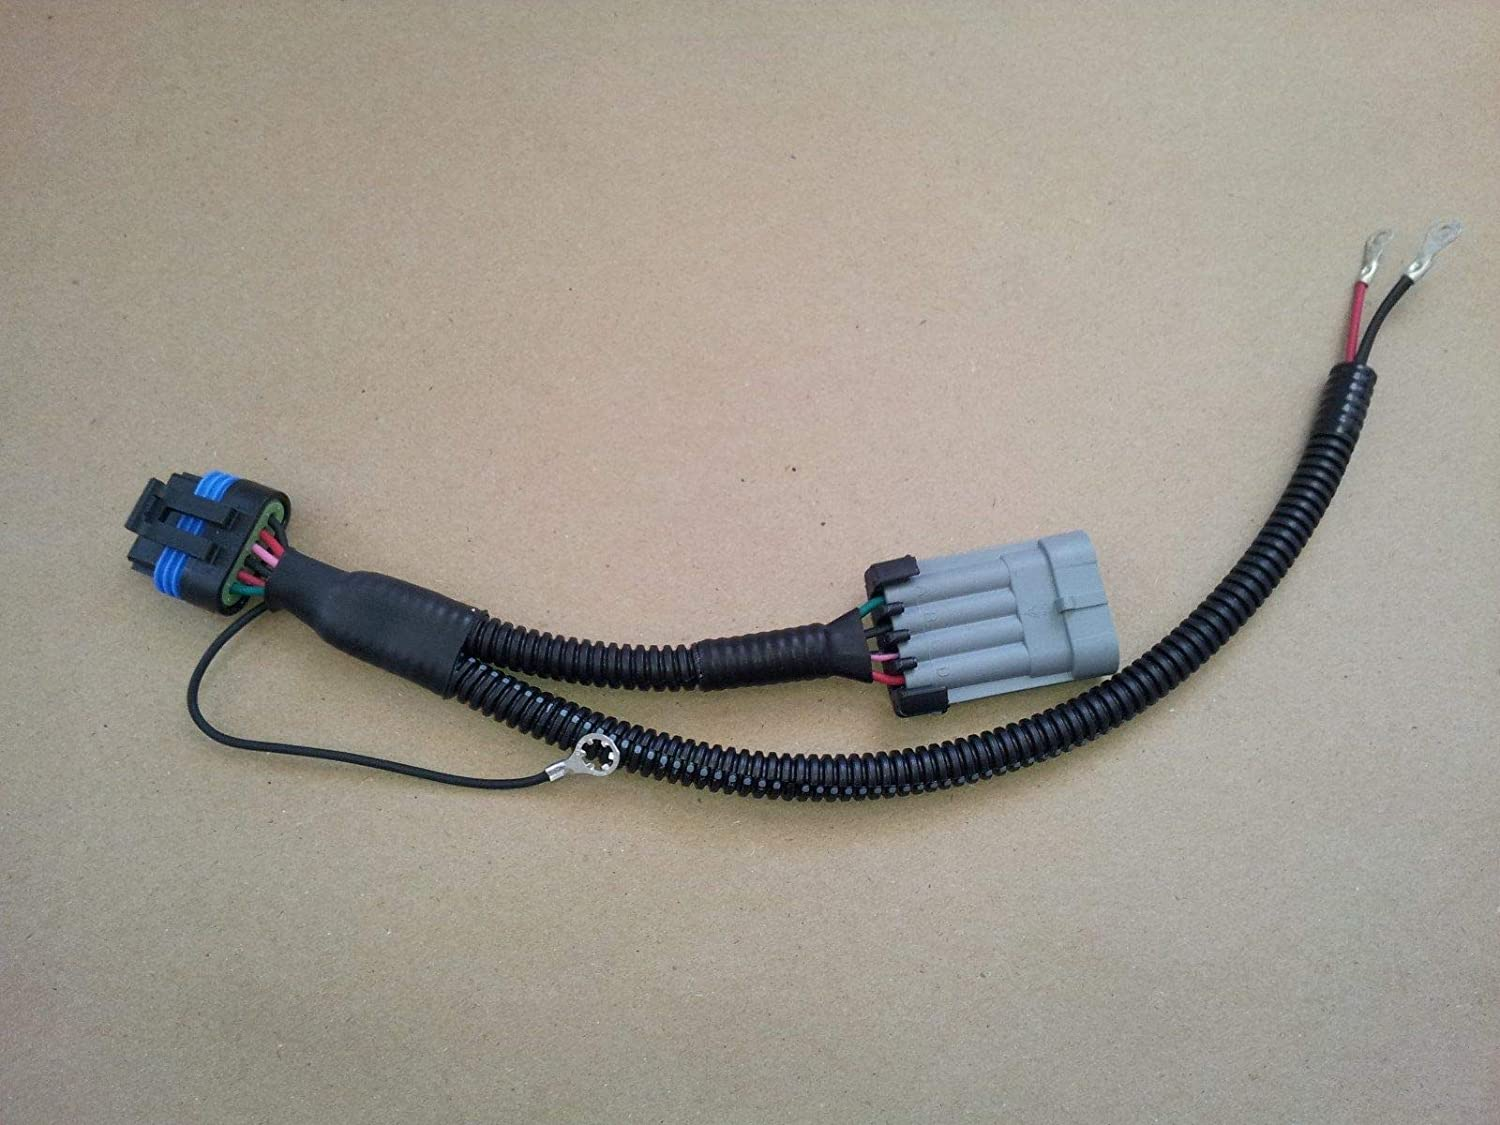 Amazon.com: 6.5L Turbo Diesel Fuel Injection Pump Wiring Harness by Badger  Diesel: AutomotiveAmazon.com